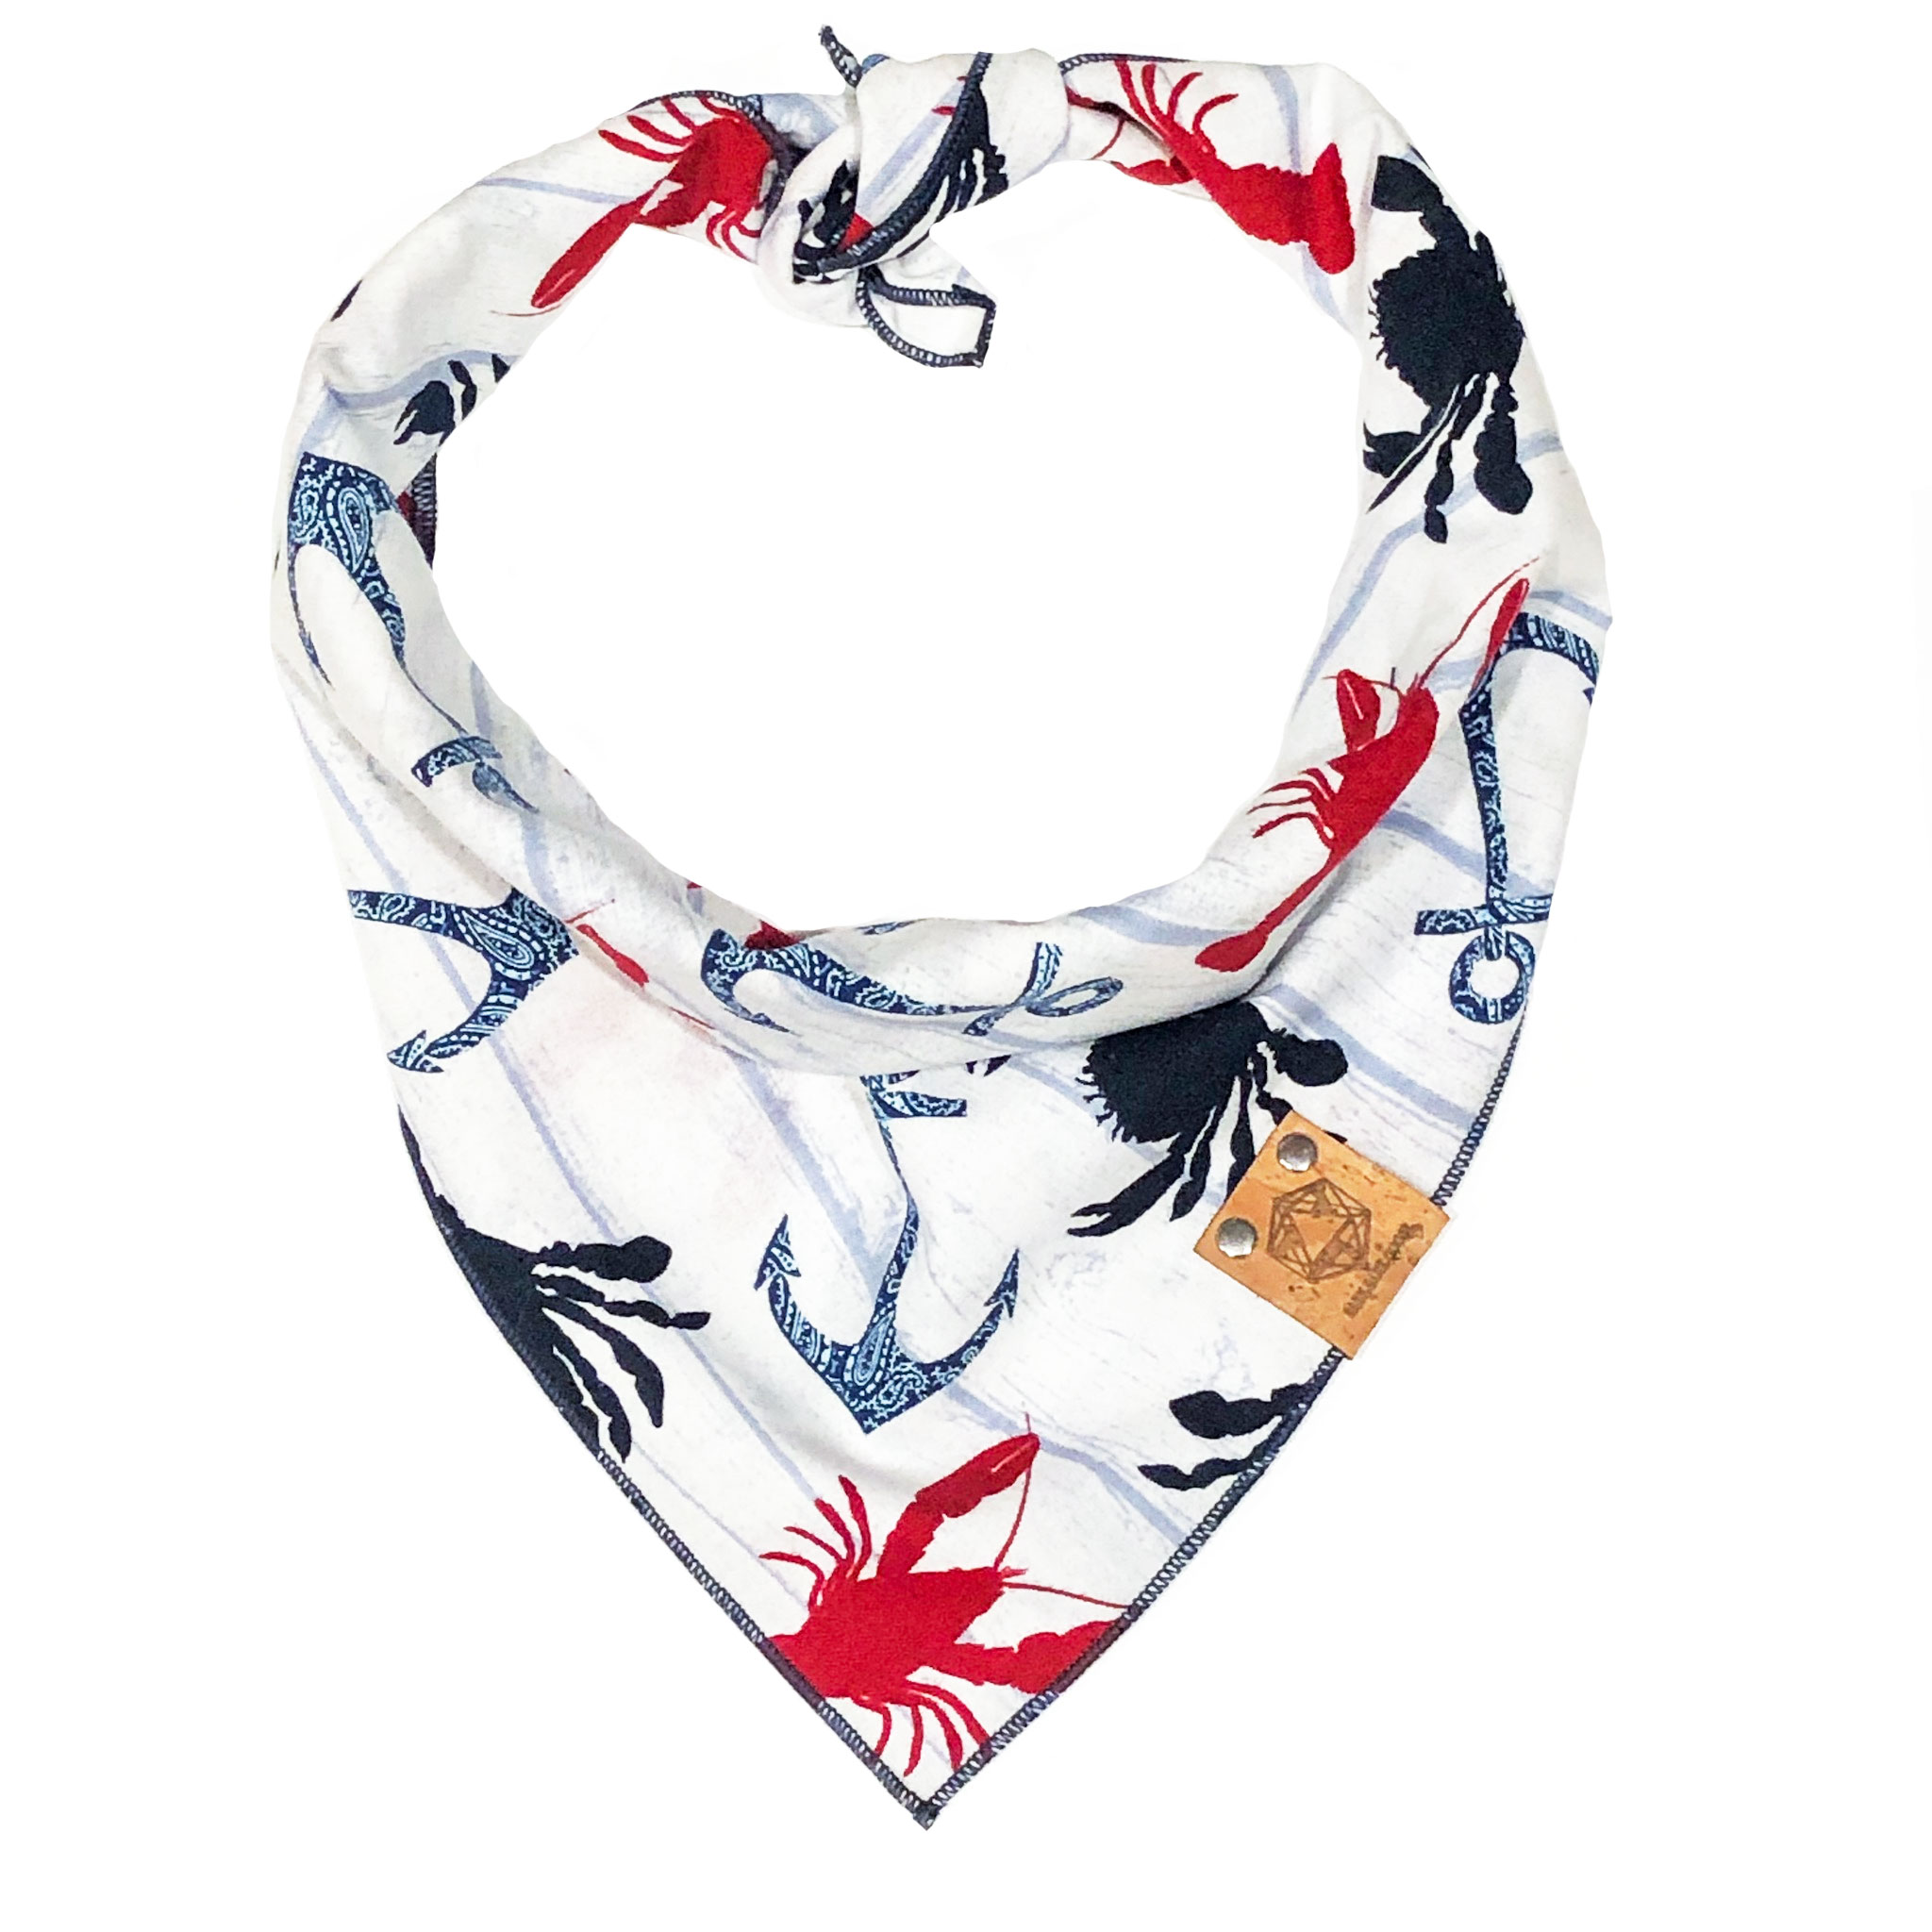 lobster-crabs-dog-bandana.jpg